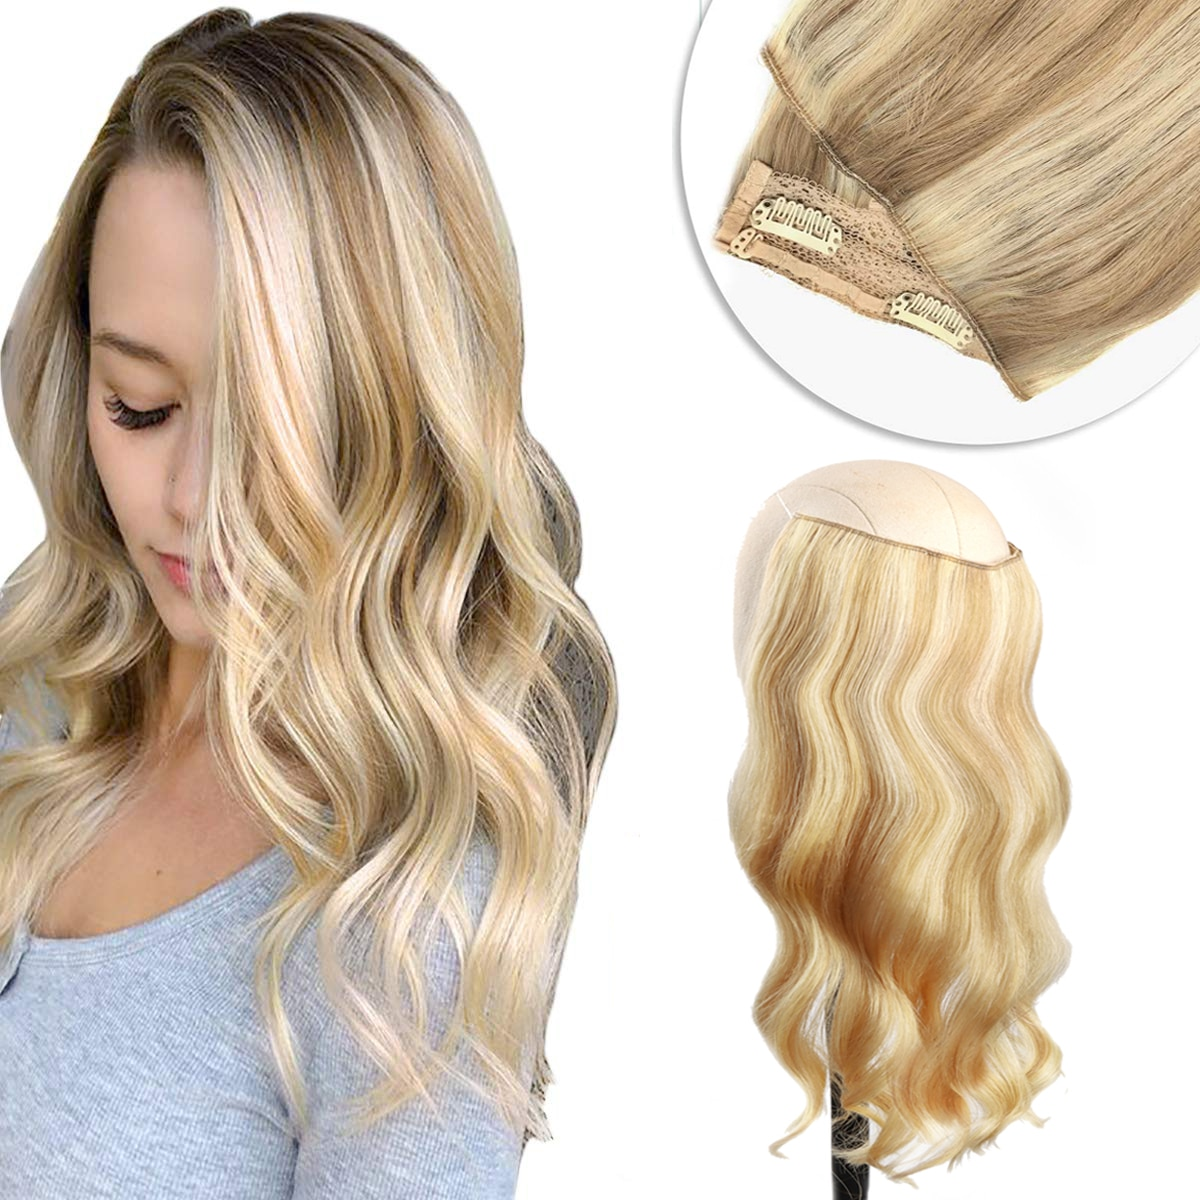 Invisible Halo Hair Extensions Straight Hair Pieces Piano Natural Black to Light Brown Honey Blonde Ombre Halo Hair Extensions